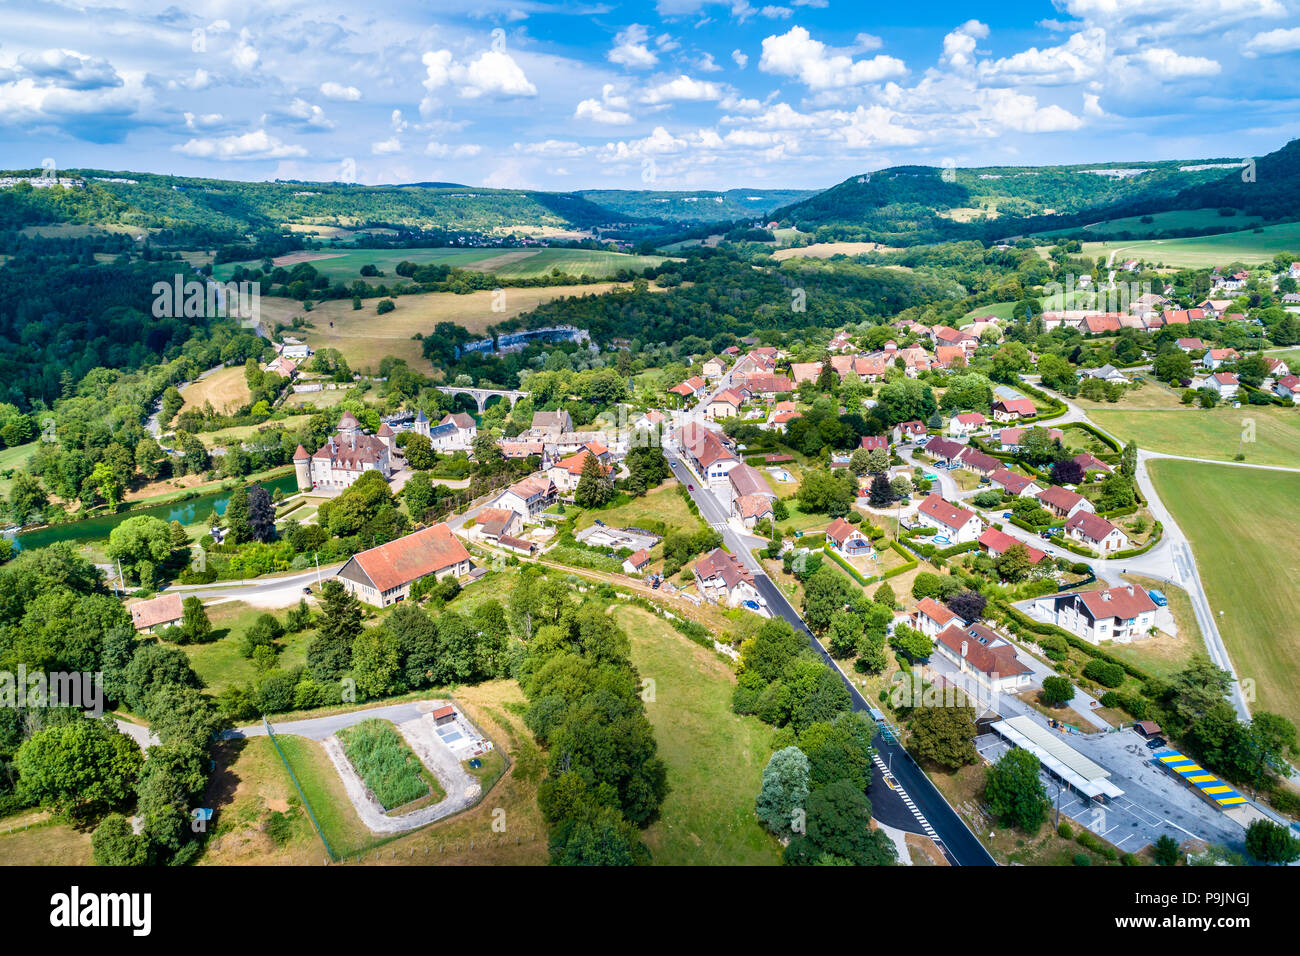 Aerial view of Cleron, a village in France famous for its castle - Stock Image